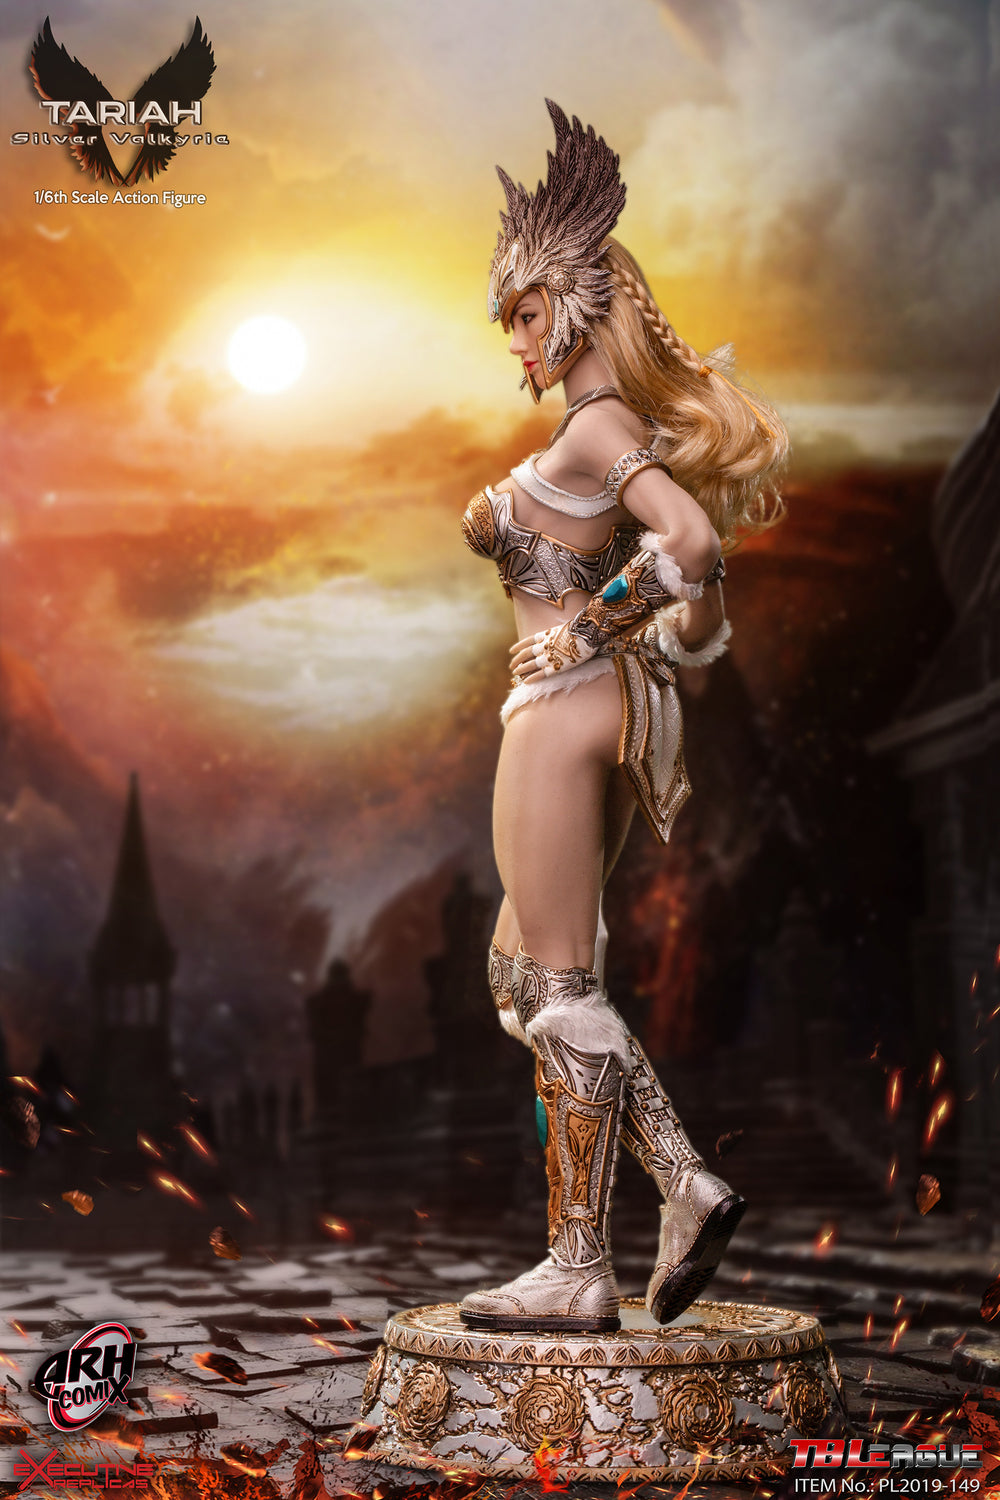 Breastplate for TBLeague PL2019-149 Tariah Silver Valkyrie 1//6 Scale Action